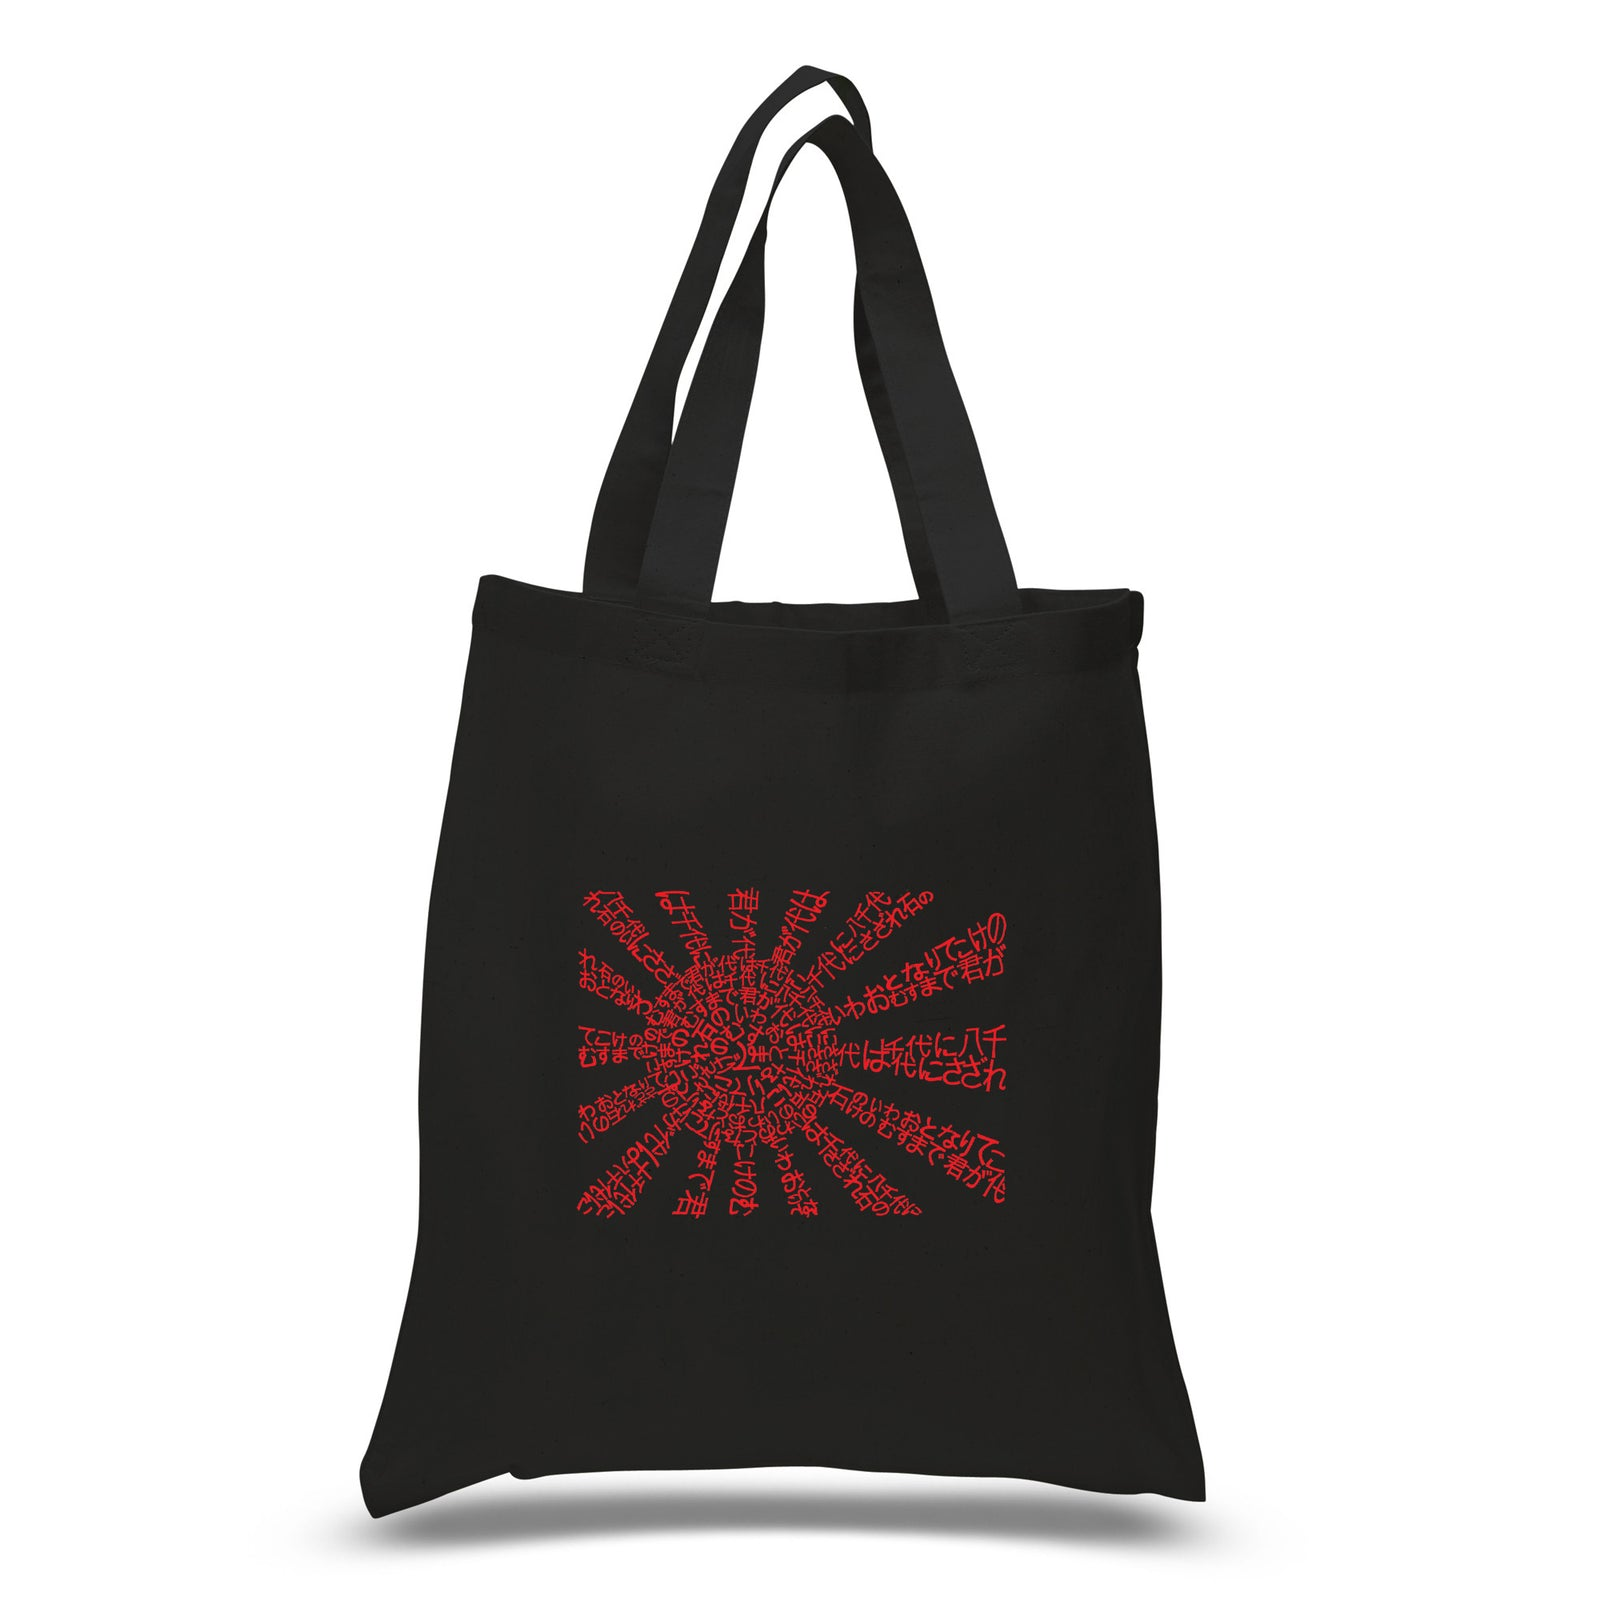 Small Tote Bag - Lyrics To The Japanese National Anthem